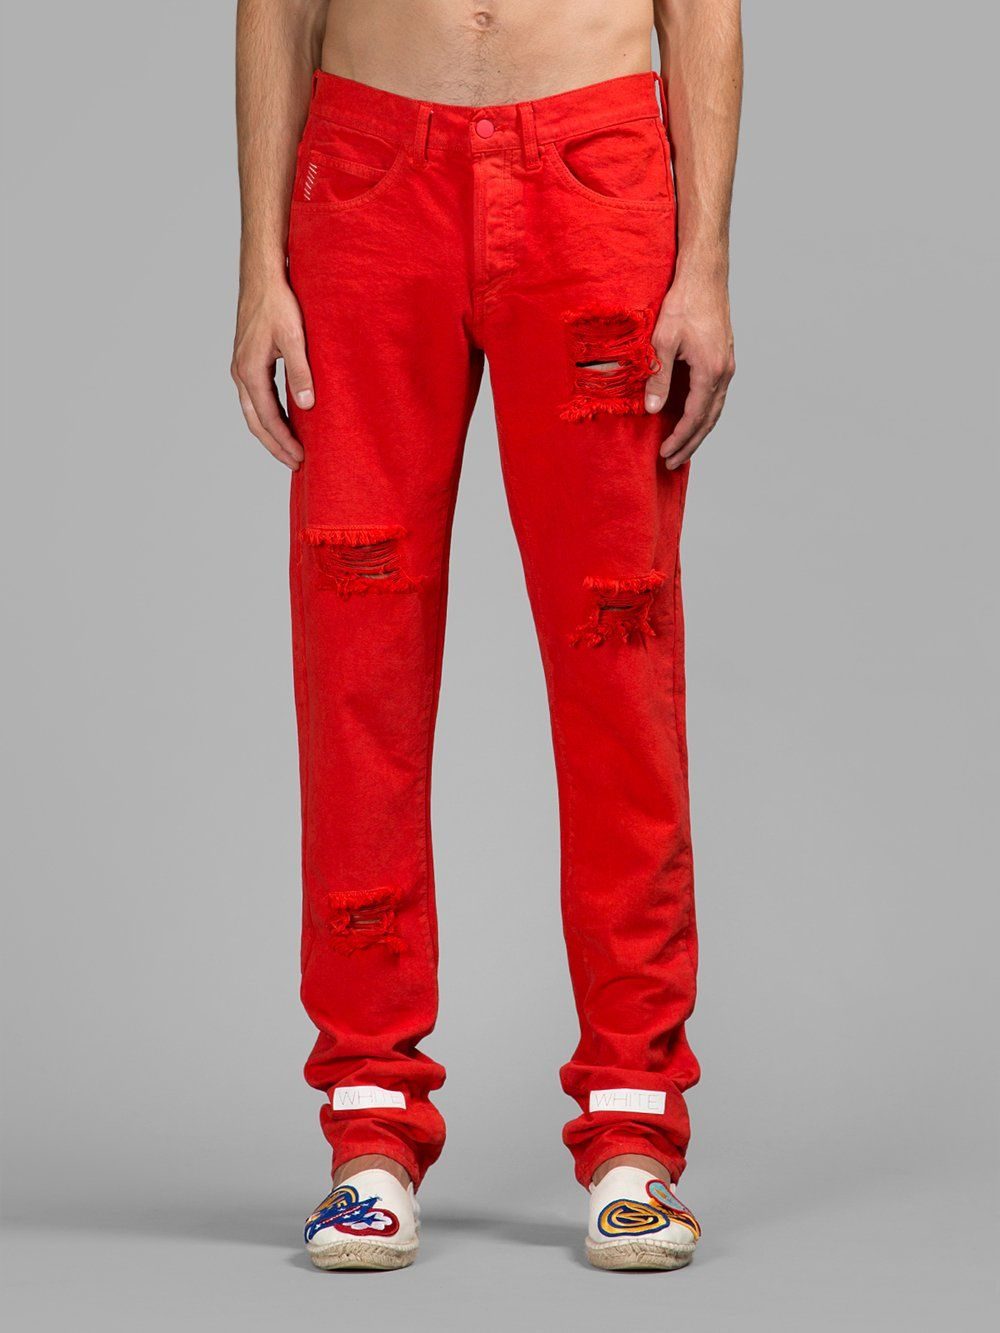 OFF-WHITE C/O VIRGIL ABLO, Destroyed Jeans (Red) | Pants ...